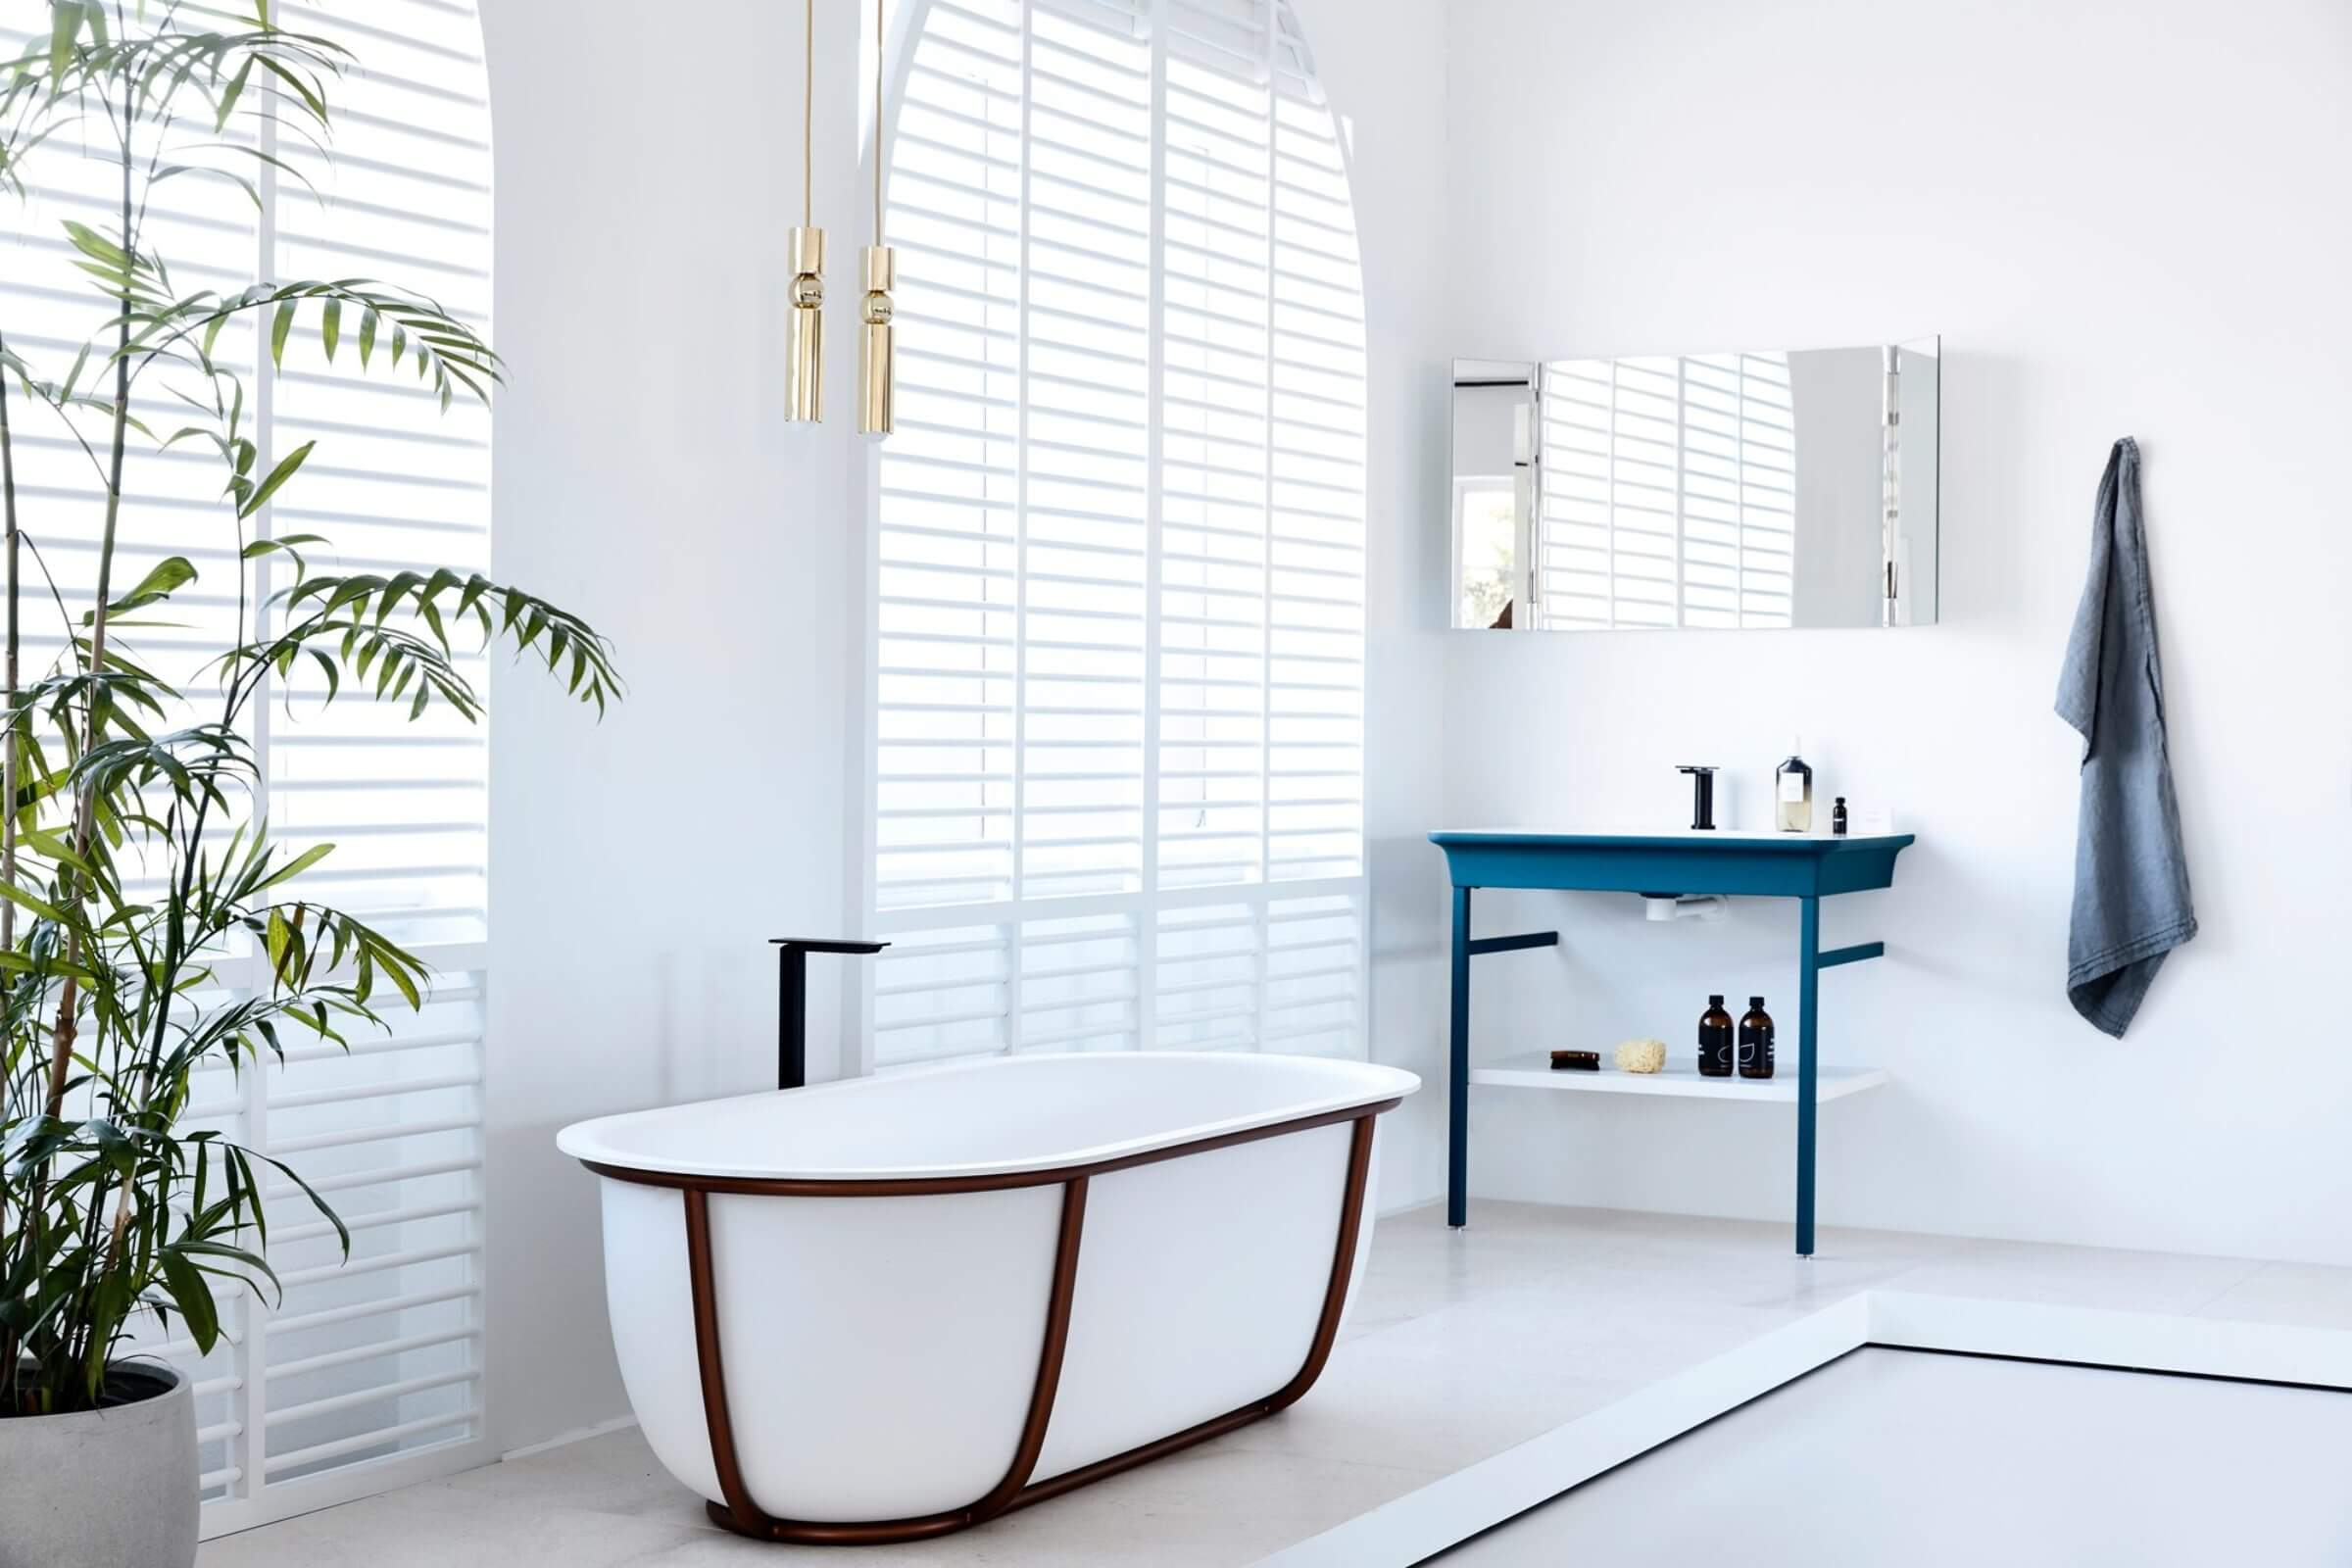 A bright blue element of Blue bathroom inspirations for your design project